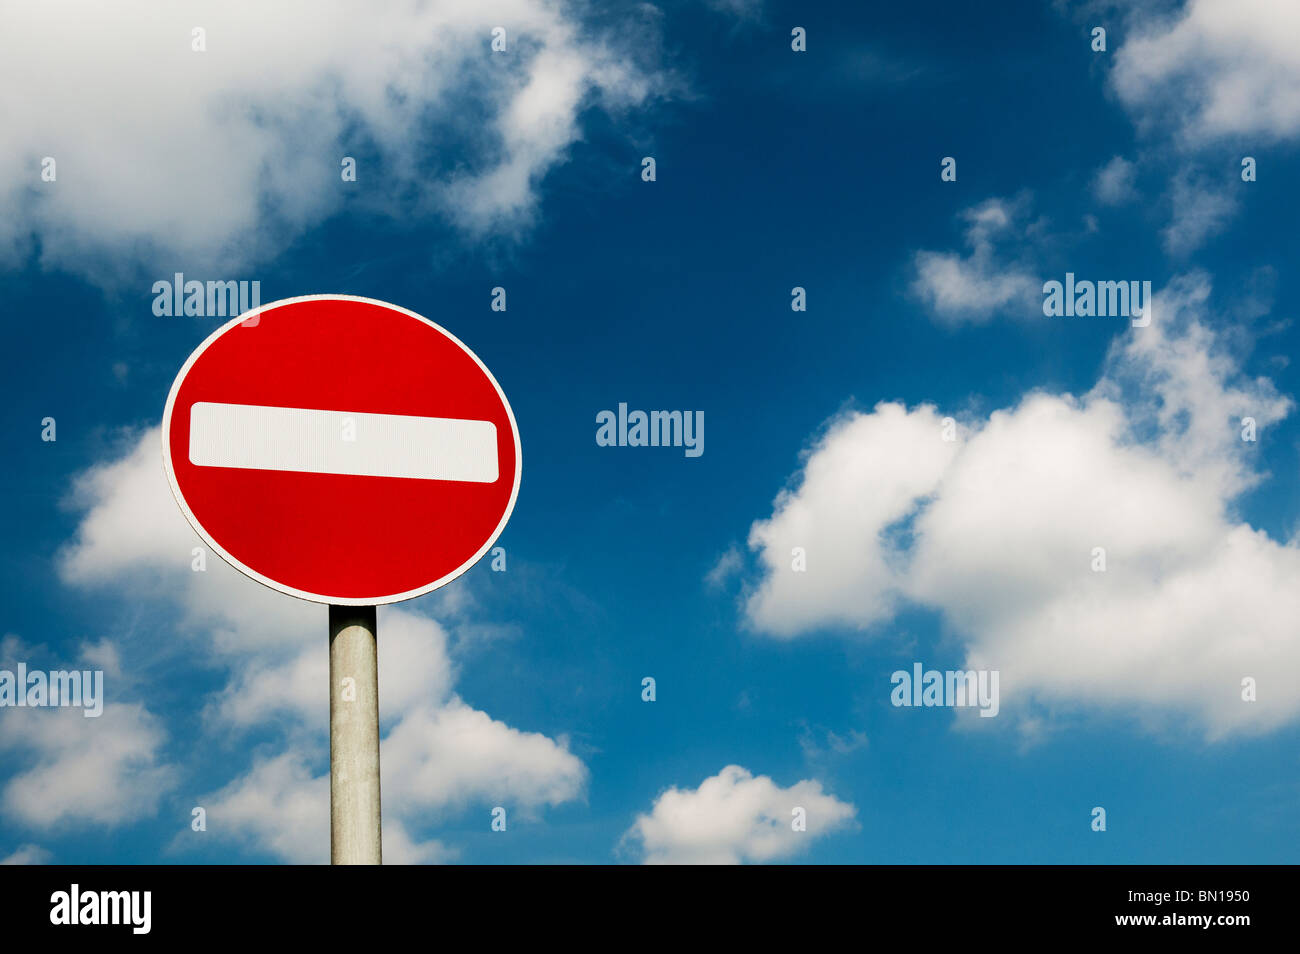 No entry road signpost against a cloudy blue sky. UK Stock Photo